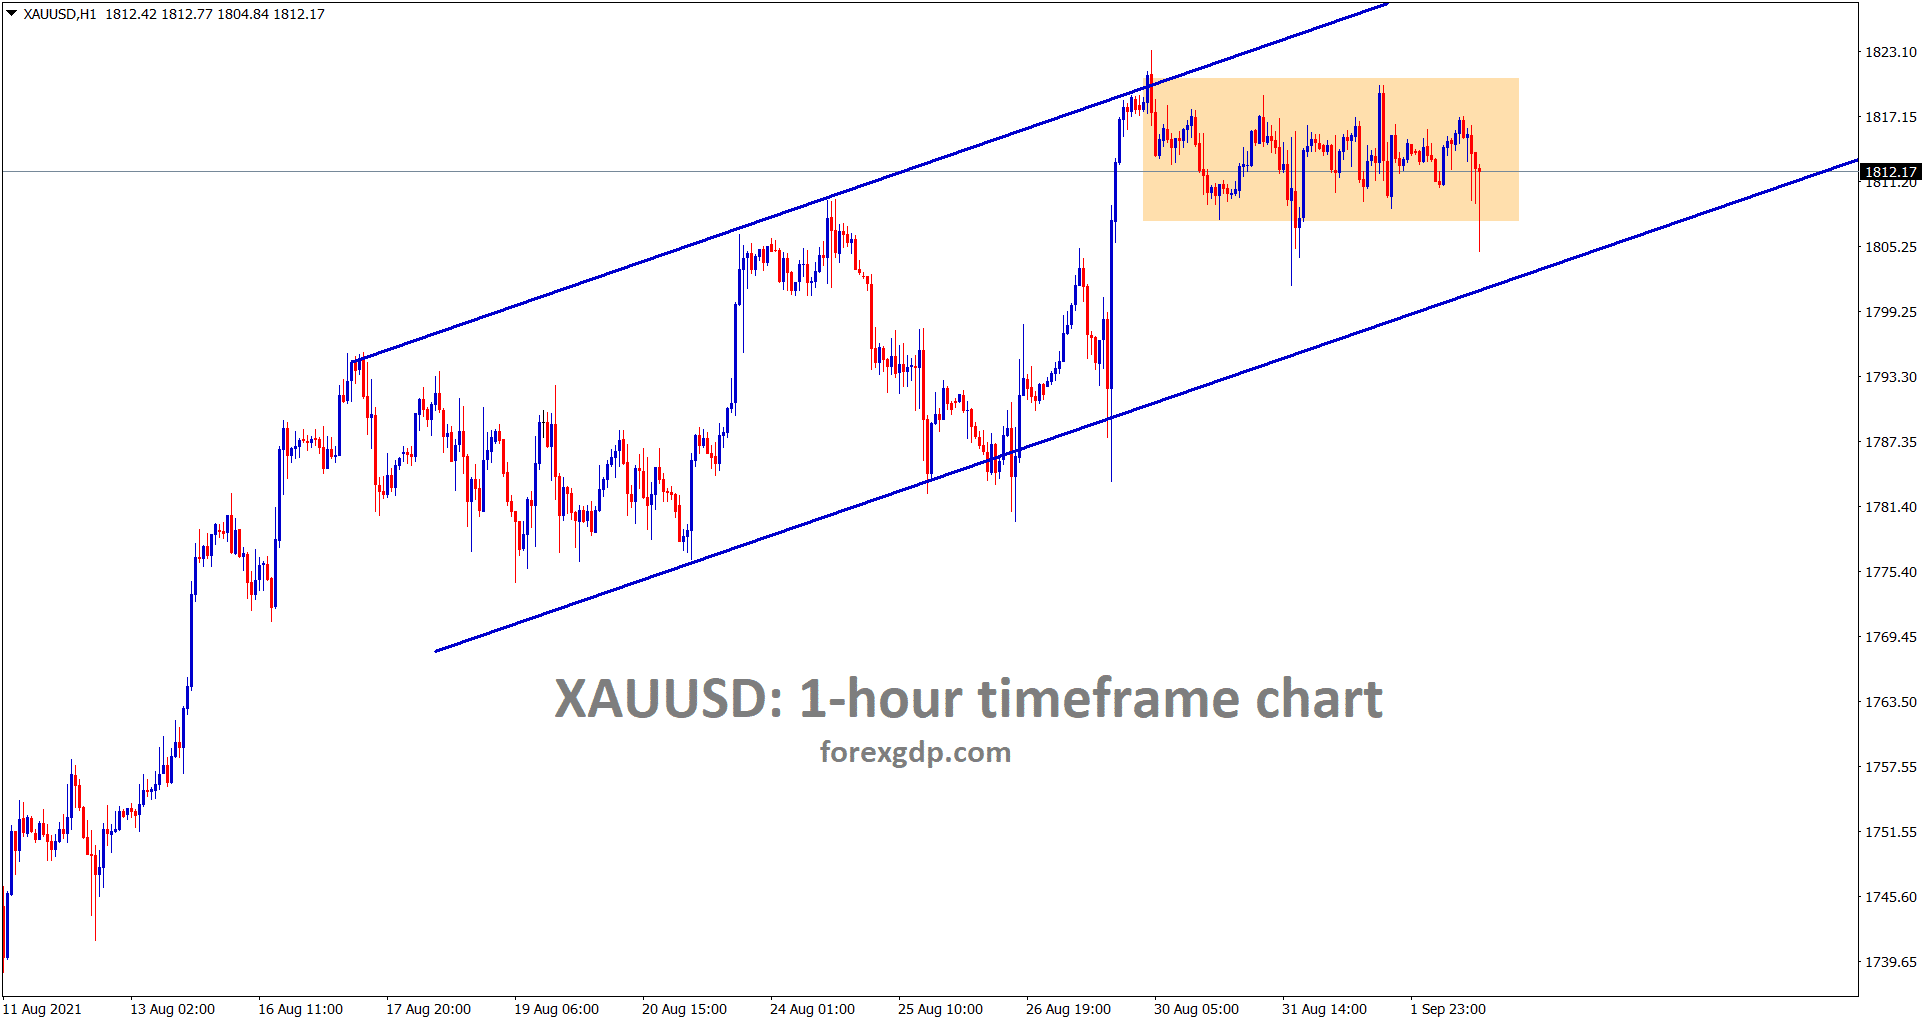 Gold is consolidating strongly in a minor ascending channel range wait for this channel breakout